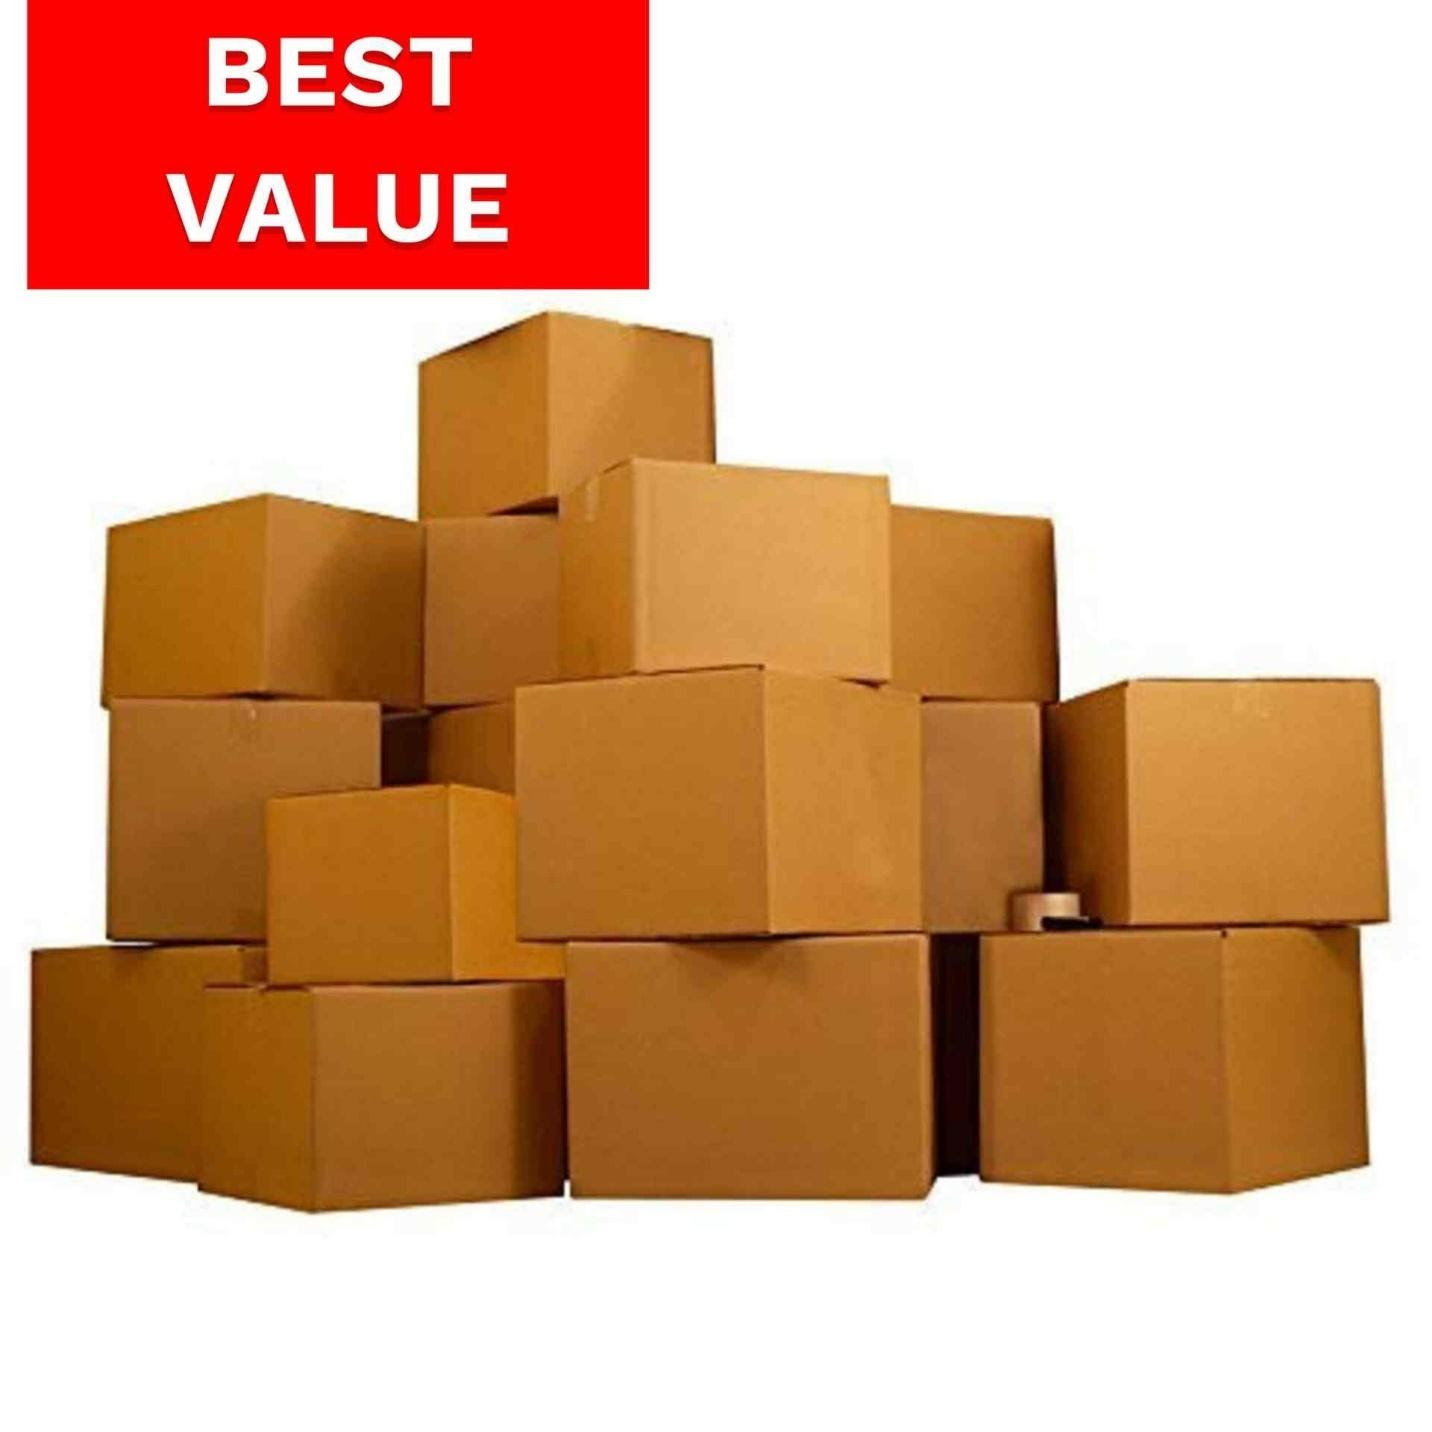 Four Bedroom Apartment or House Bundle Image